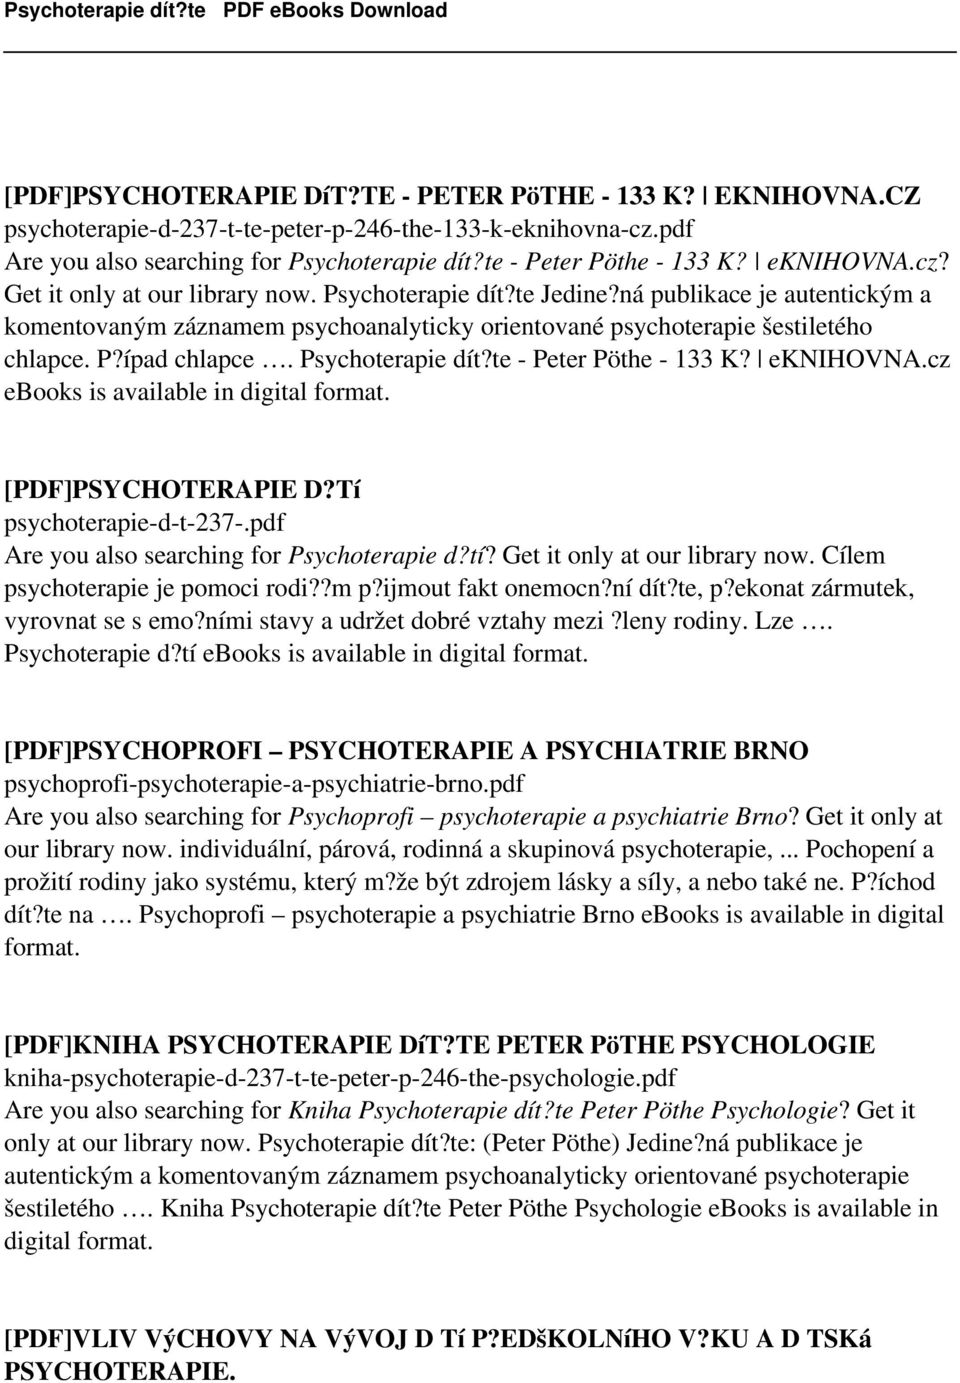 Psychoterapie dít?te - Peter Pöthe - 133 K? eknihovna.cz ebooks is available in digital format. [PDF]PSYCHOTERAPIE D?Tí psychoterapie-d-t-237-.pdf Are you also searching for Psychoterapie d?tí?